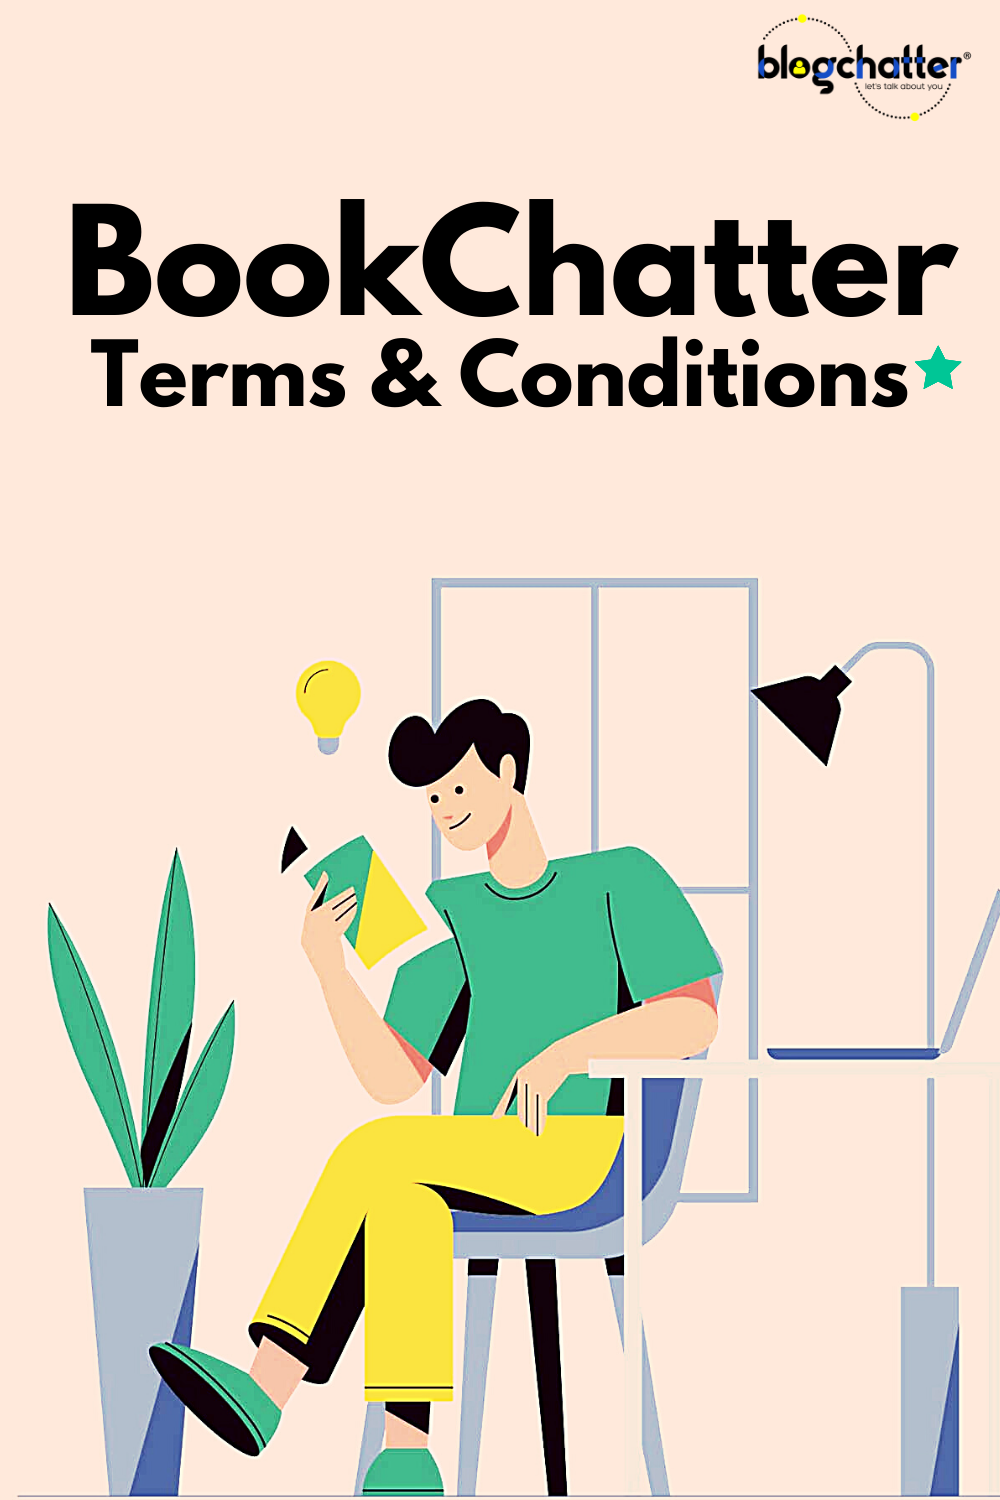 BookChatter Terms & Conditions